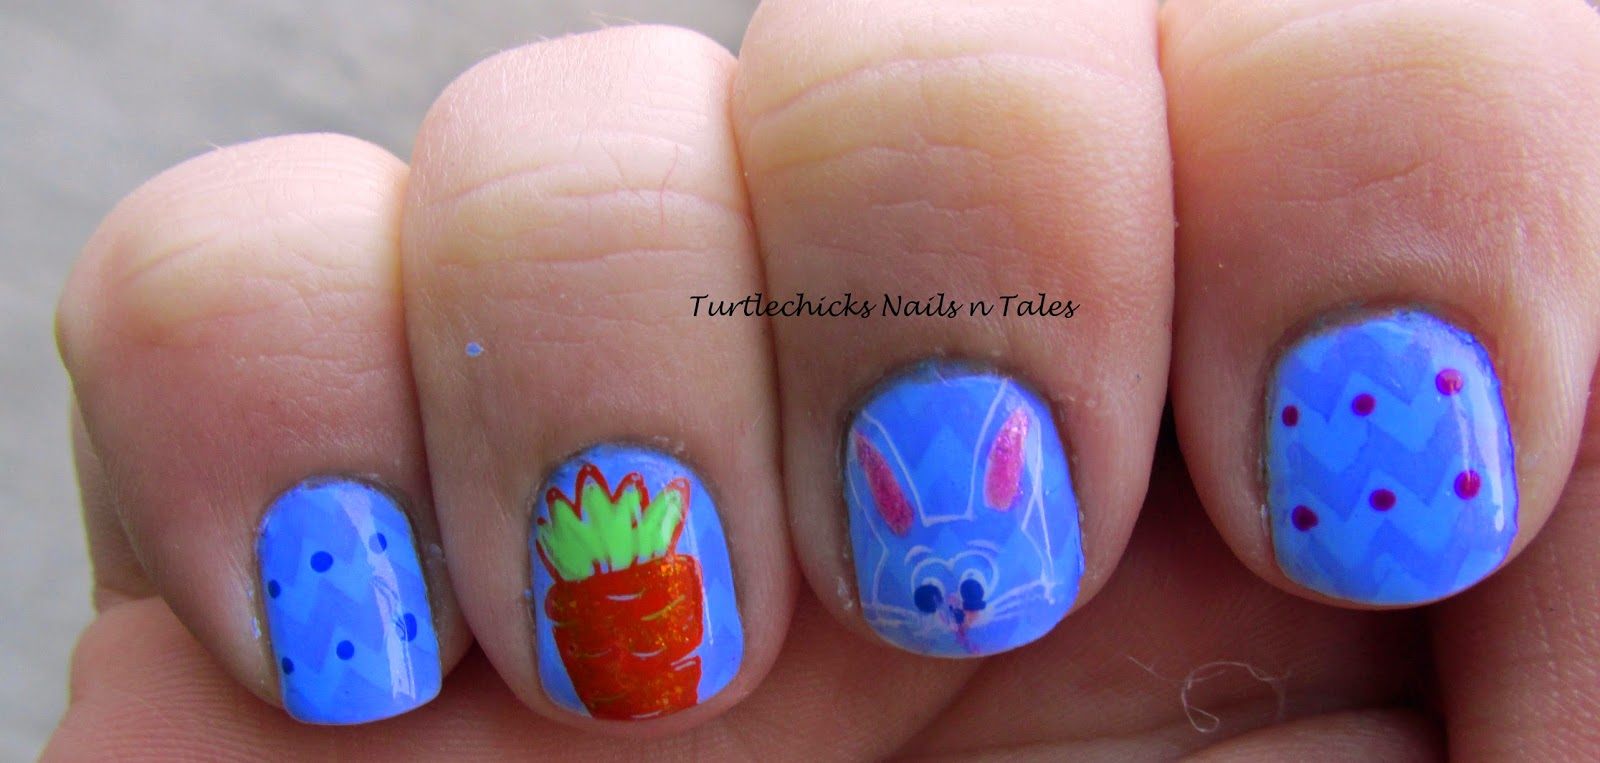 Turtlechick\'s Nails N Tales